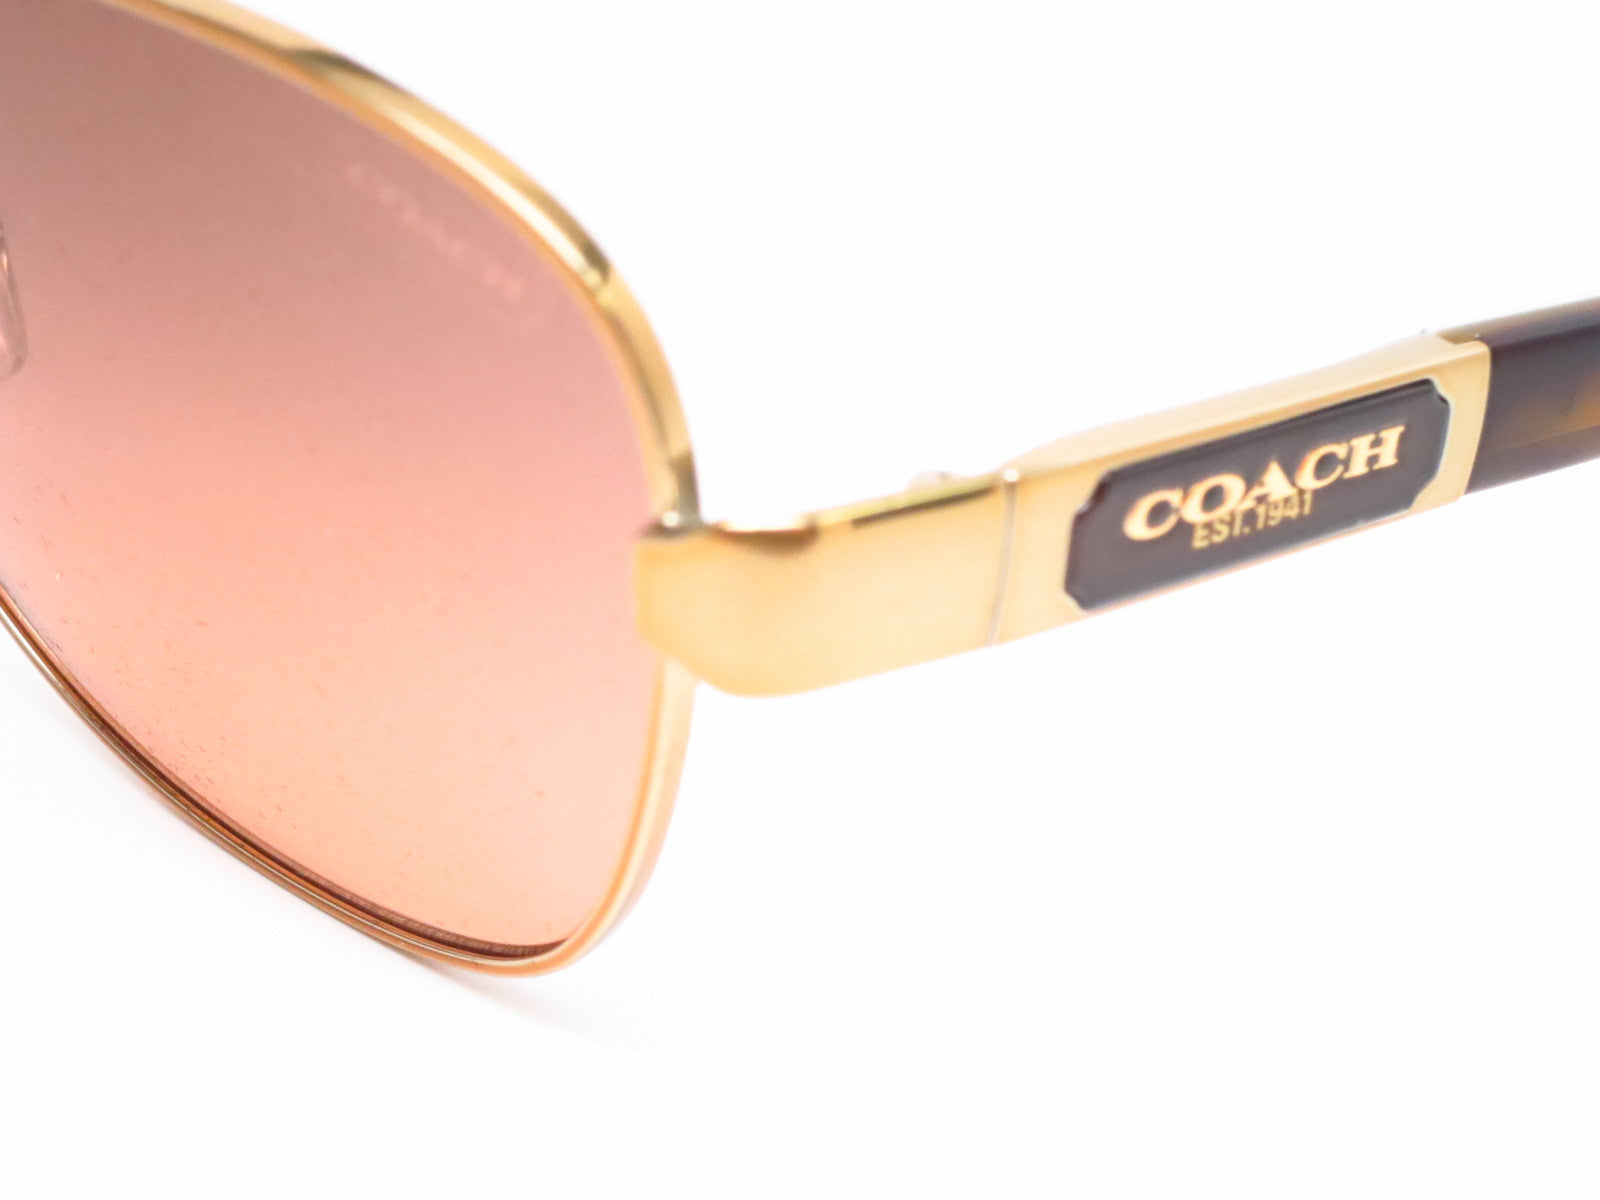 dbd8ec9cce17c ... uk coach hc 7012 caroline 9169 95 gold dark tortoise sunglasses eye  heart shades b1da0 90c0c